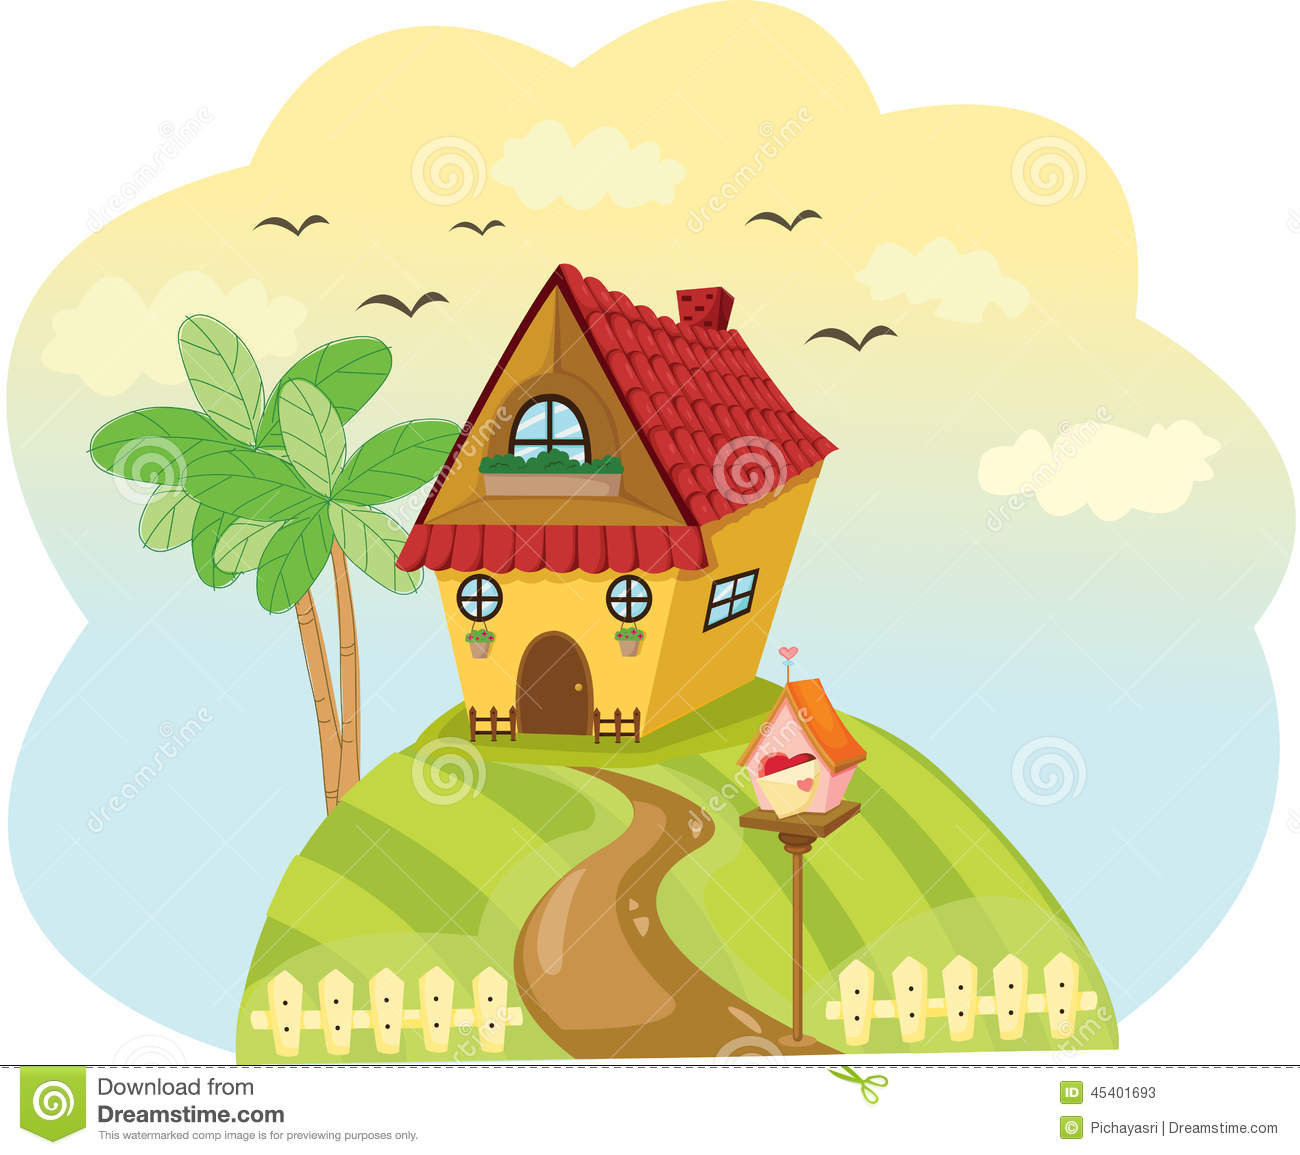 house on hill clipart - photo #18